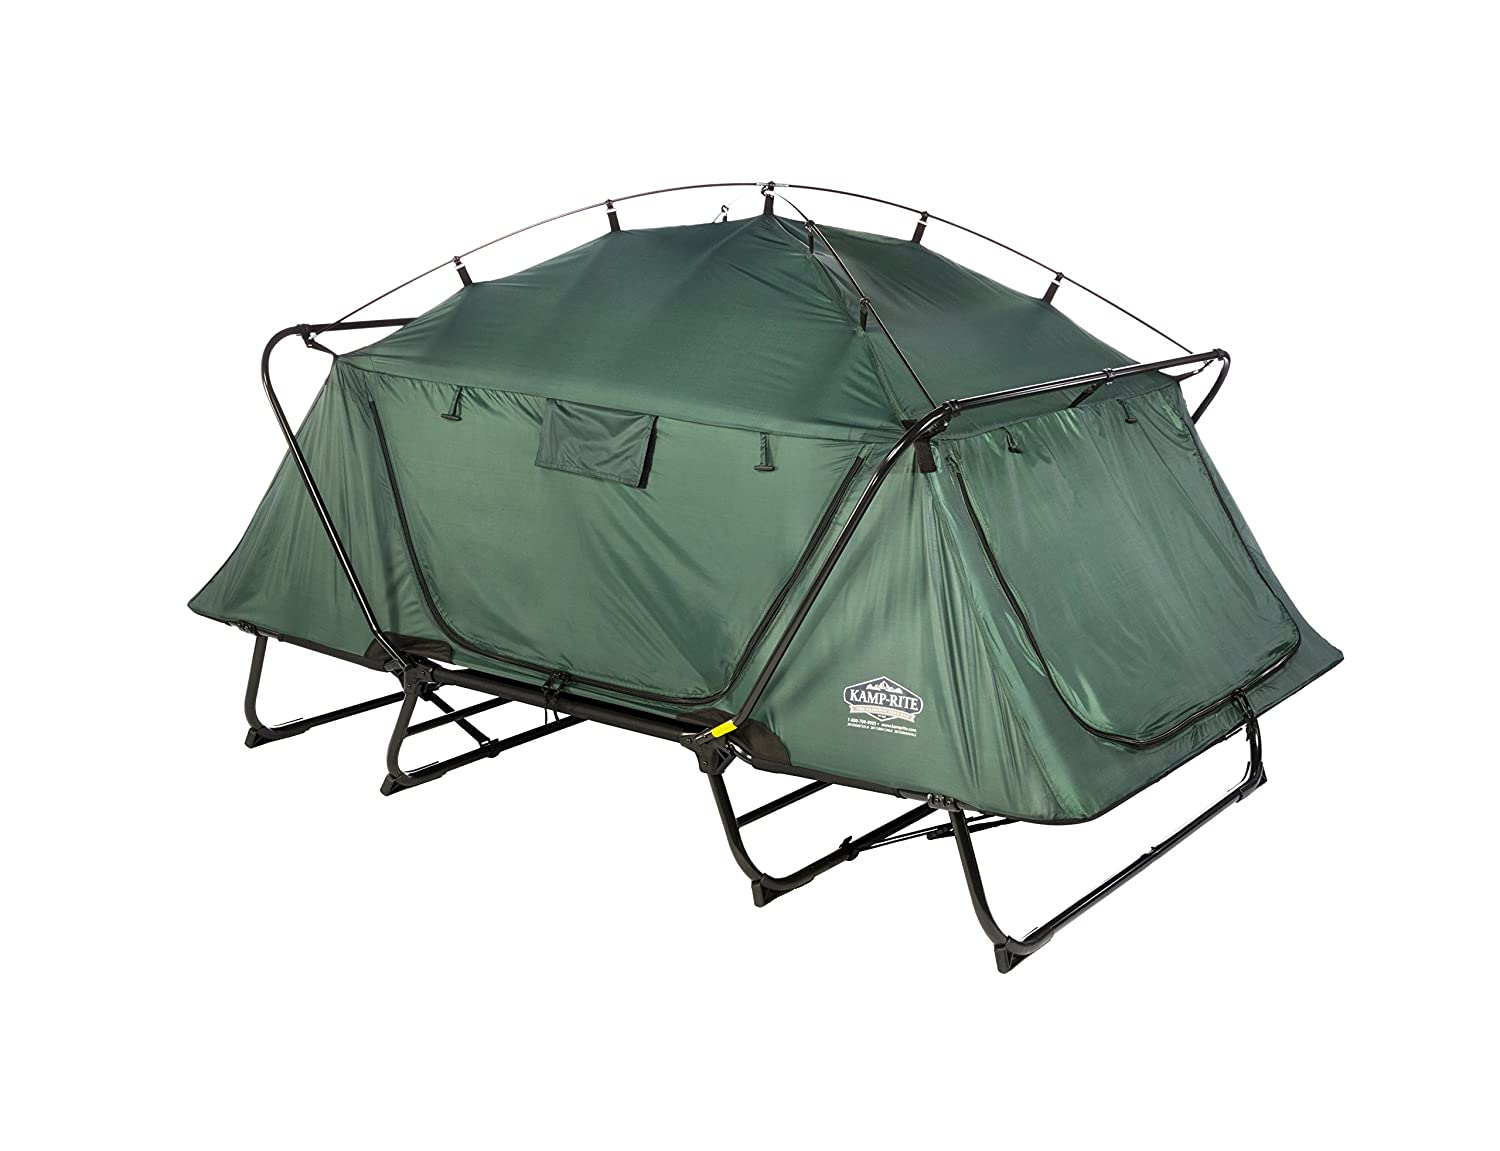 Amazon.com  K&Rite Double TentCot  C&ing Cots  Sports u0026 Outdoors  sc 1 st  Amazon.com & Amazon.com : KampRite Double TentCot : Camping Cots : Sports ...